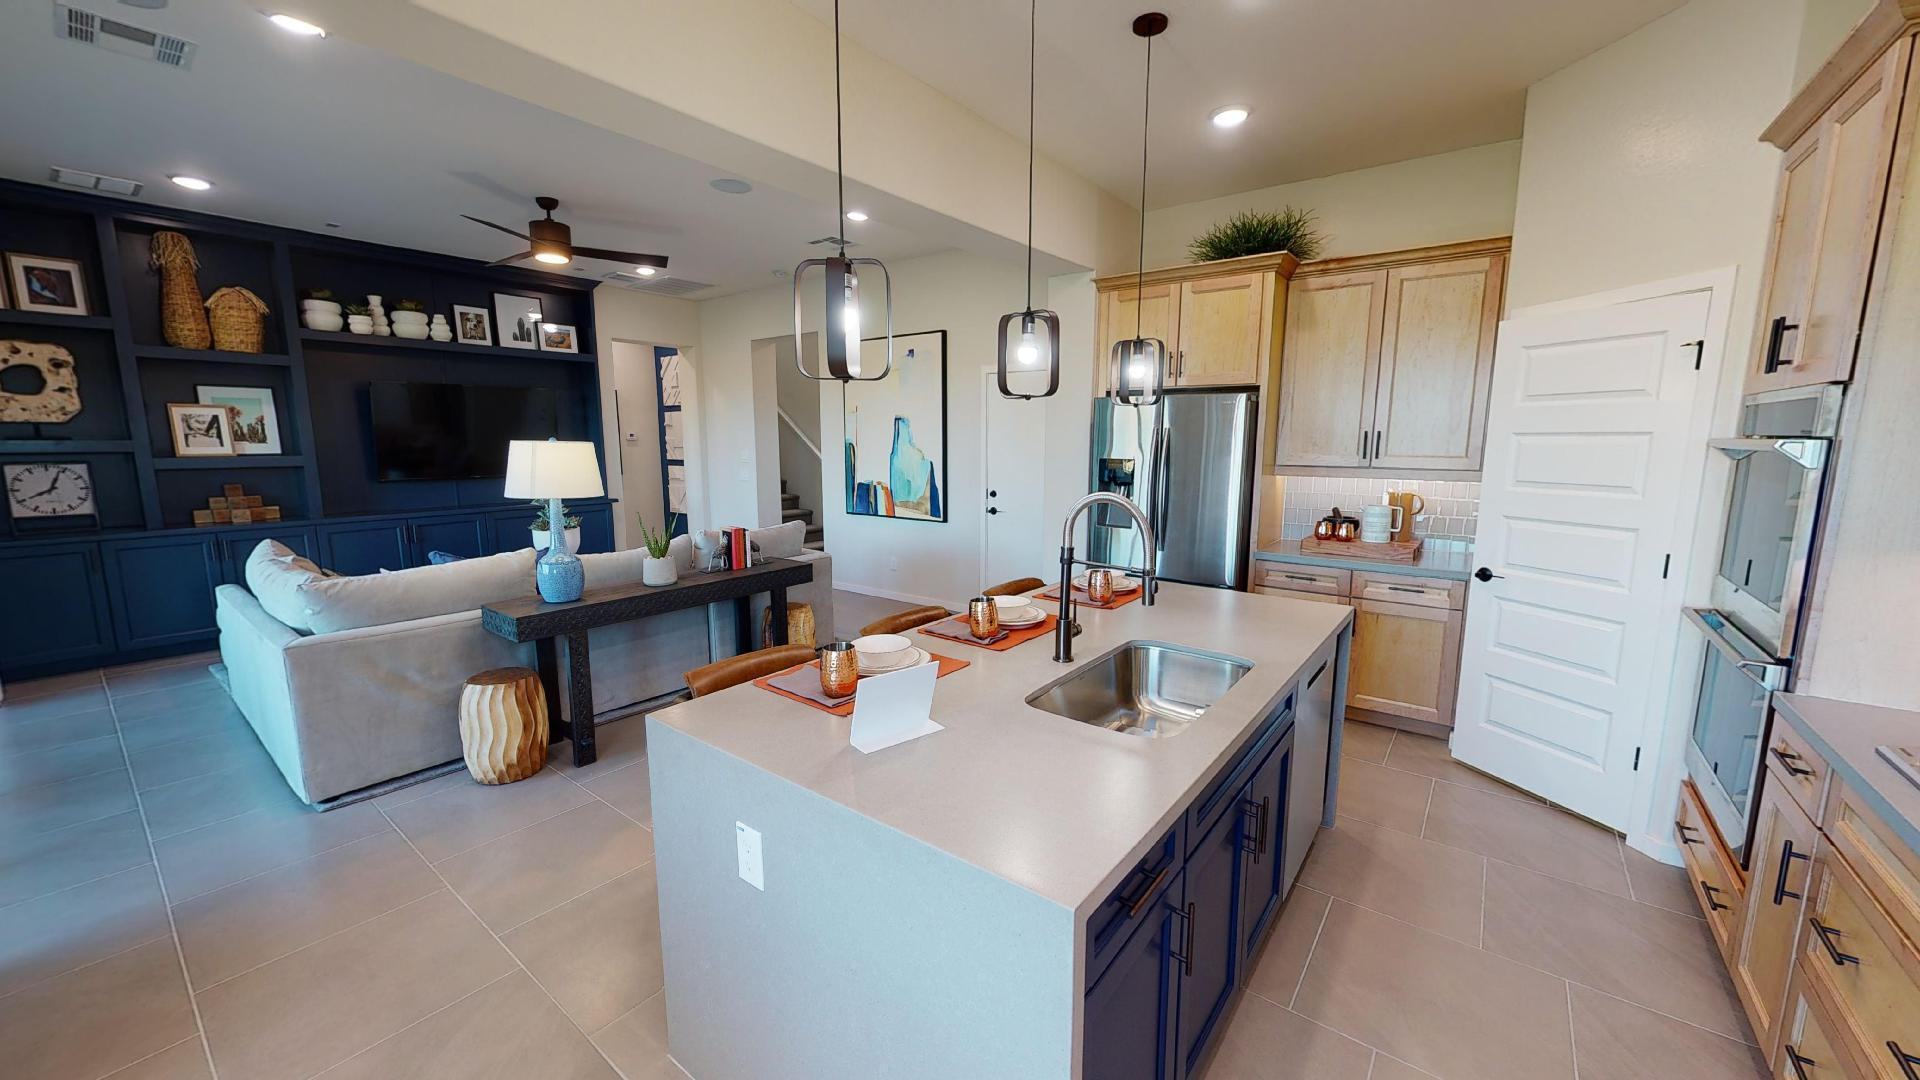 Kitchen featured in the Mohave By Cresleigh Homes Arizona, Inc. in Phoenix-Mesa, AZ